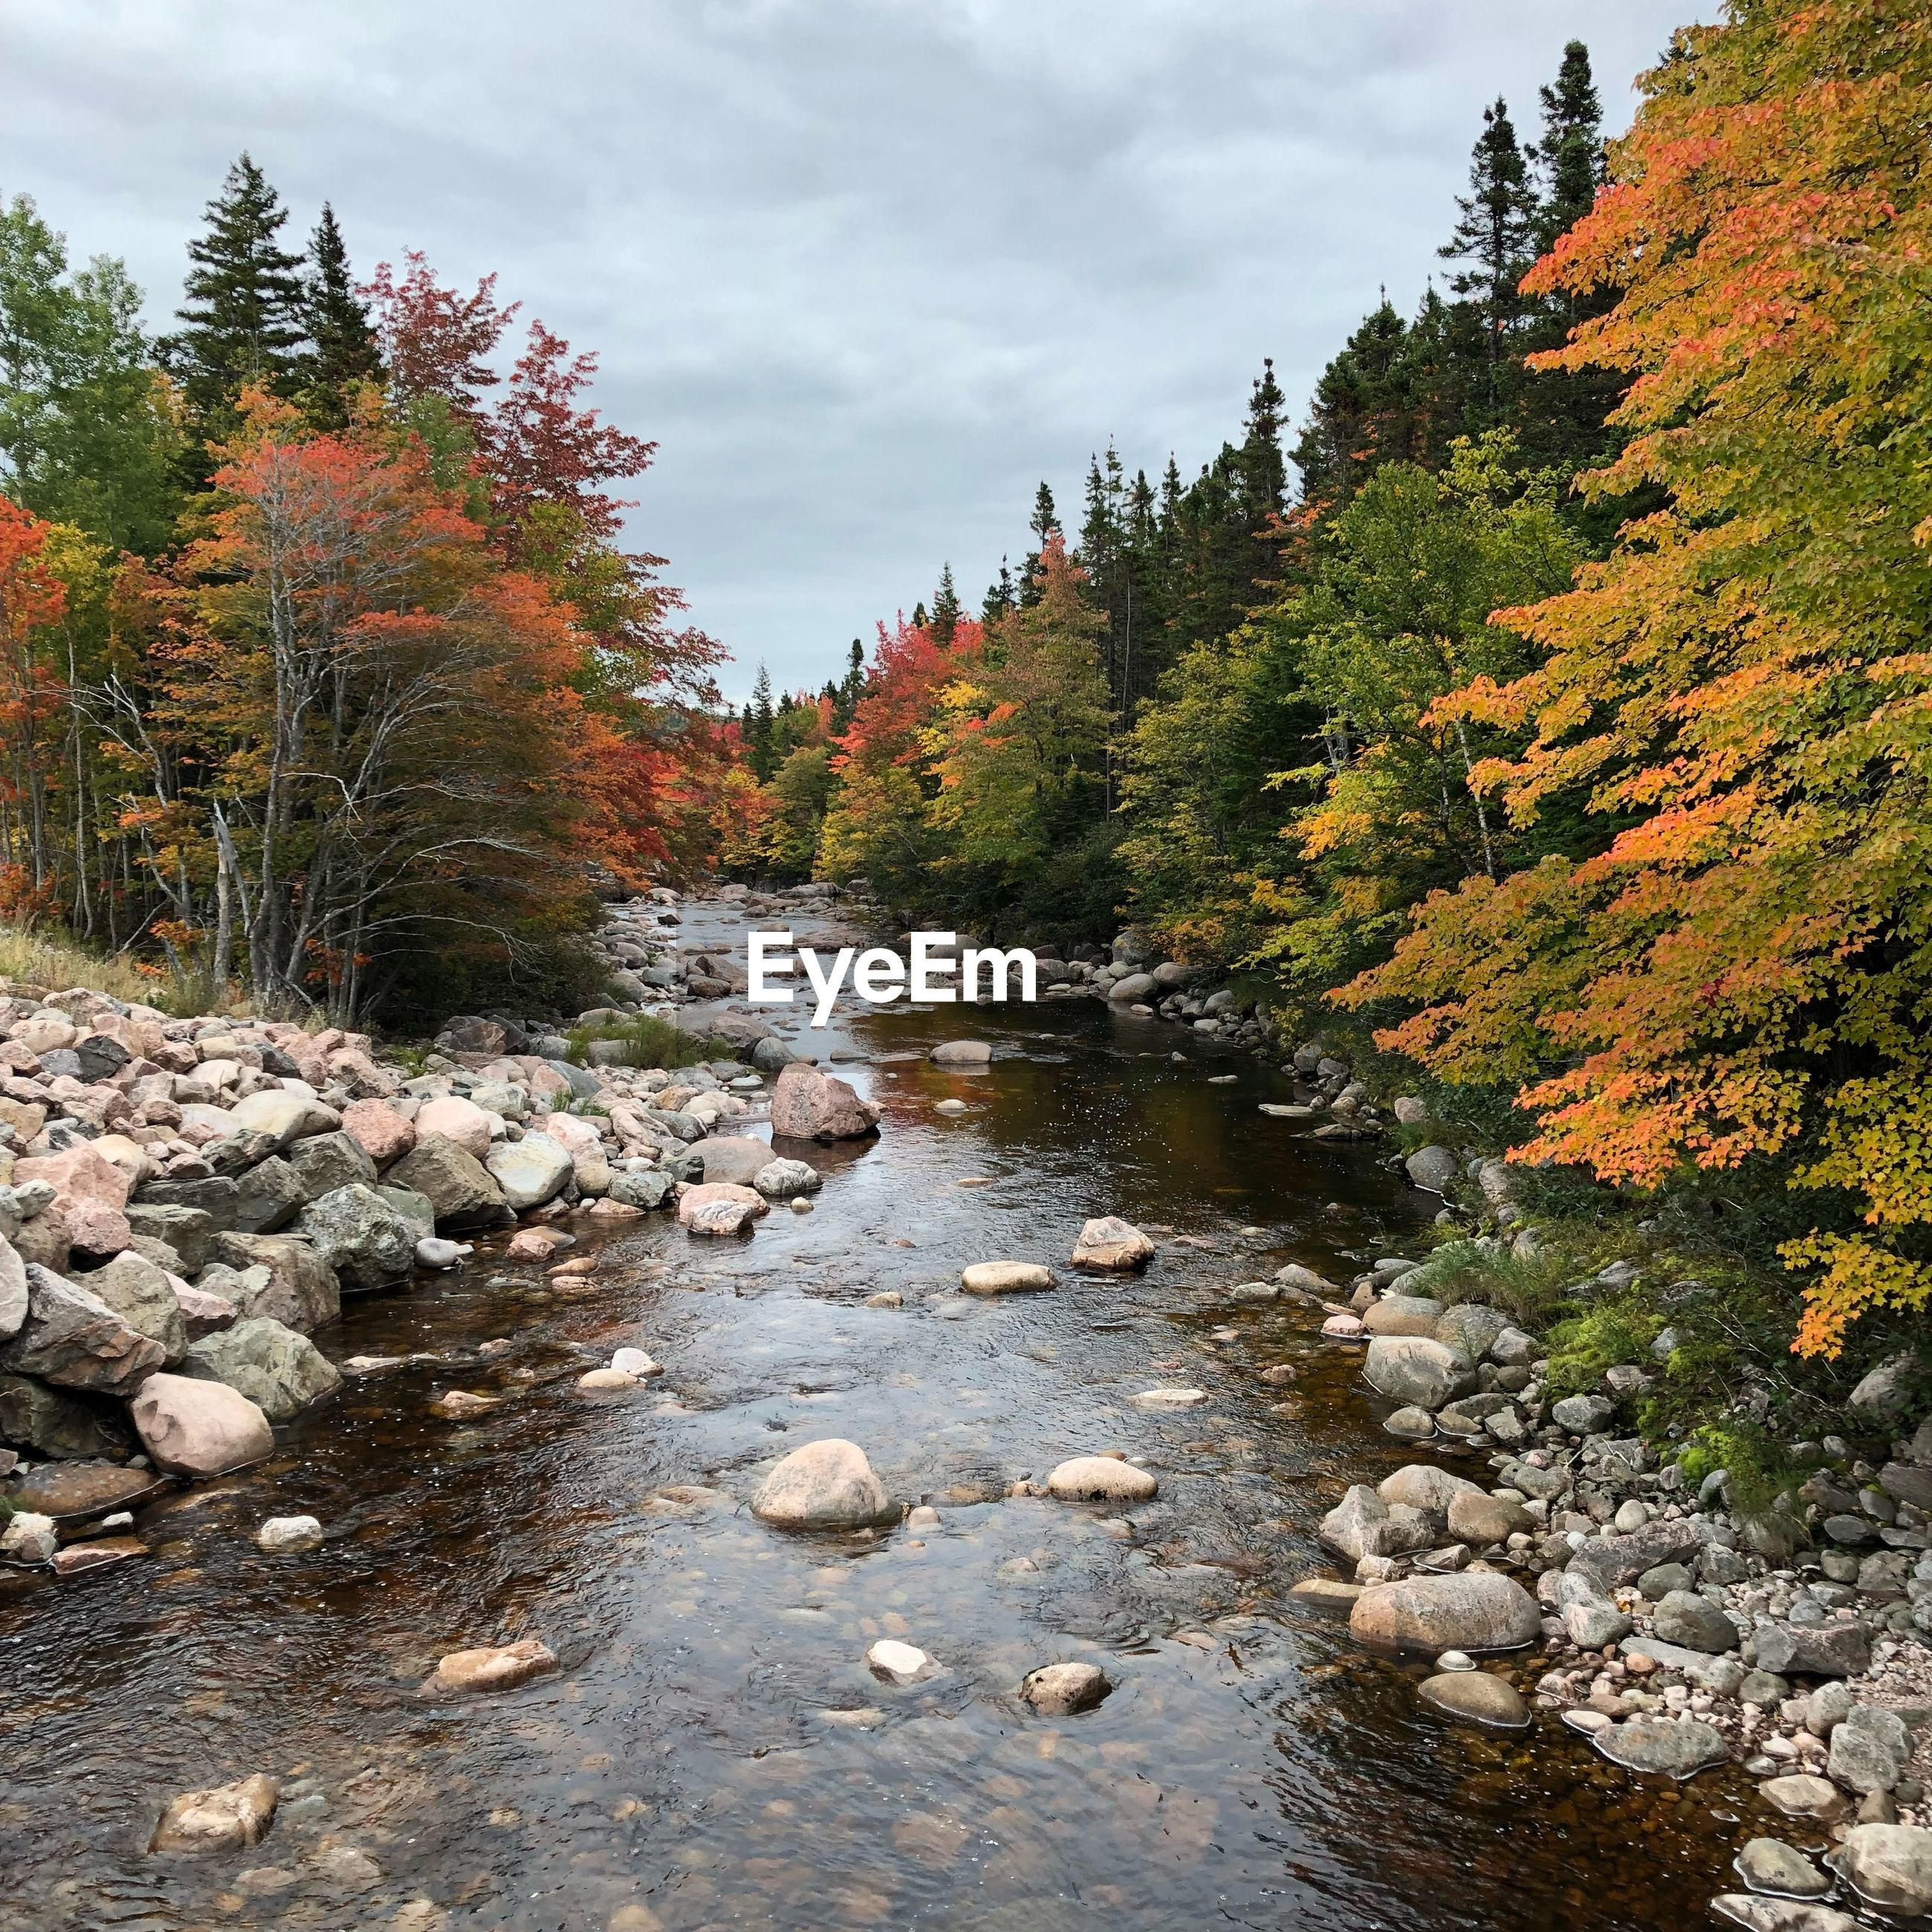 SCENIC VIEW OF RIVER STREAM AMIDST TREES